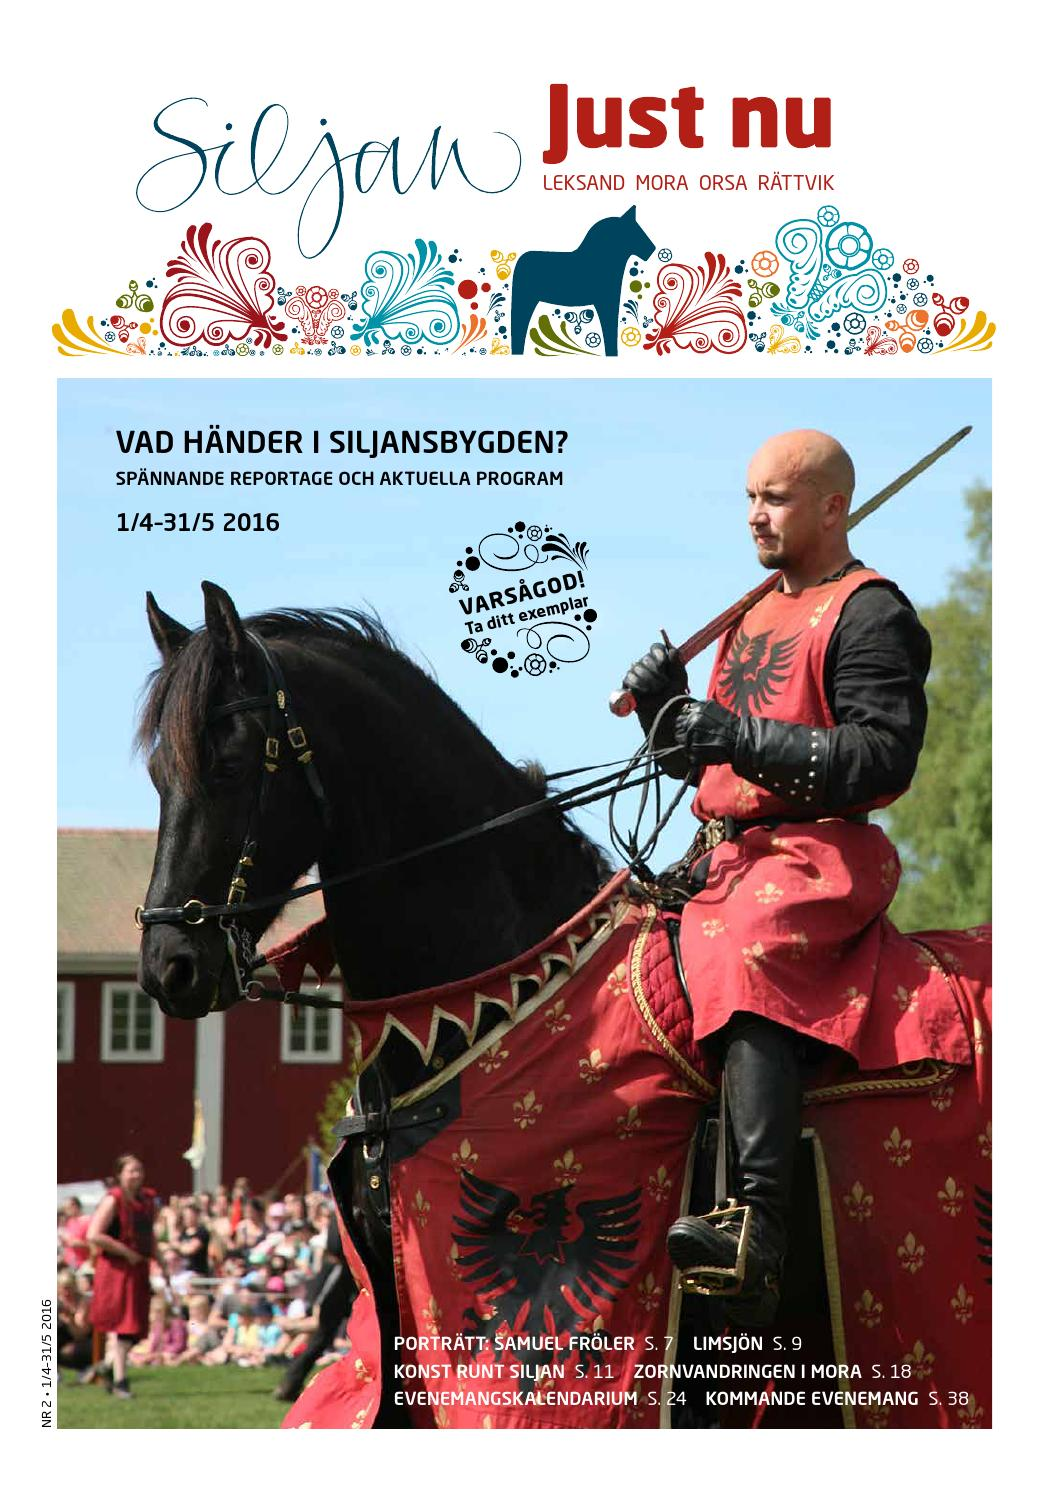 Siljan just nu 1 2016 by siljan turism   issuu